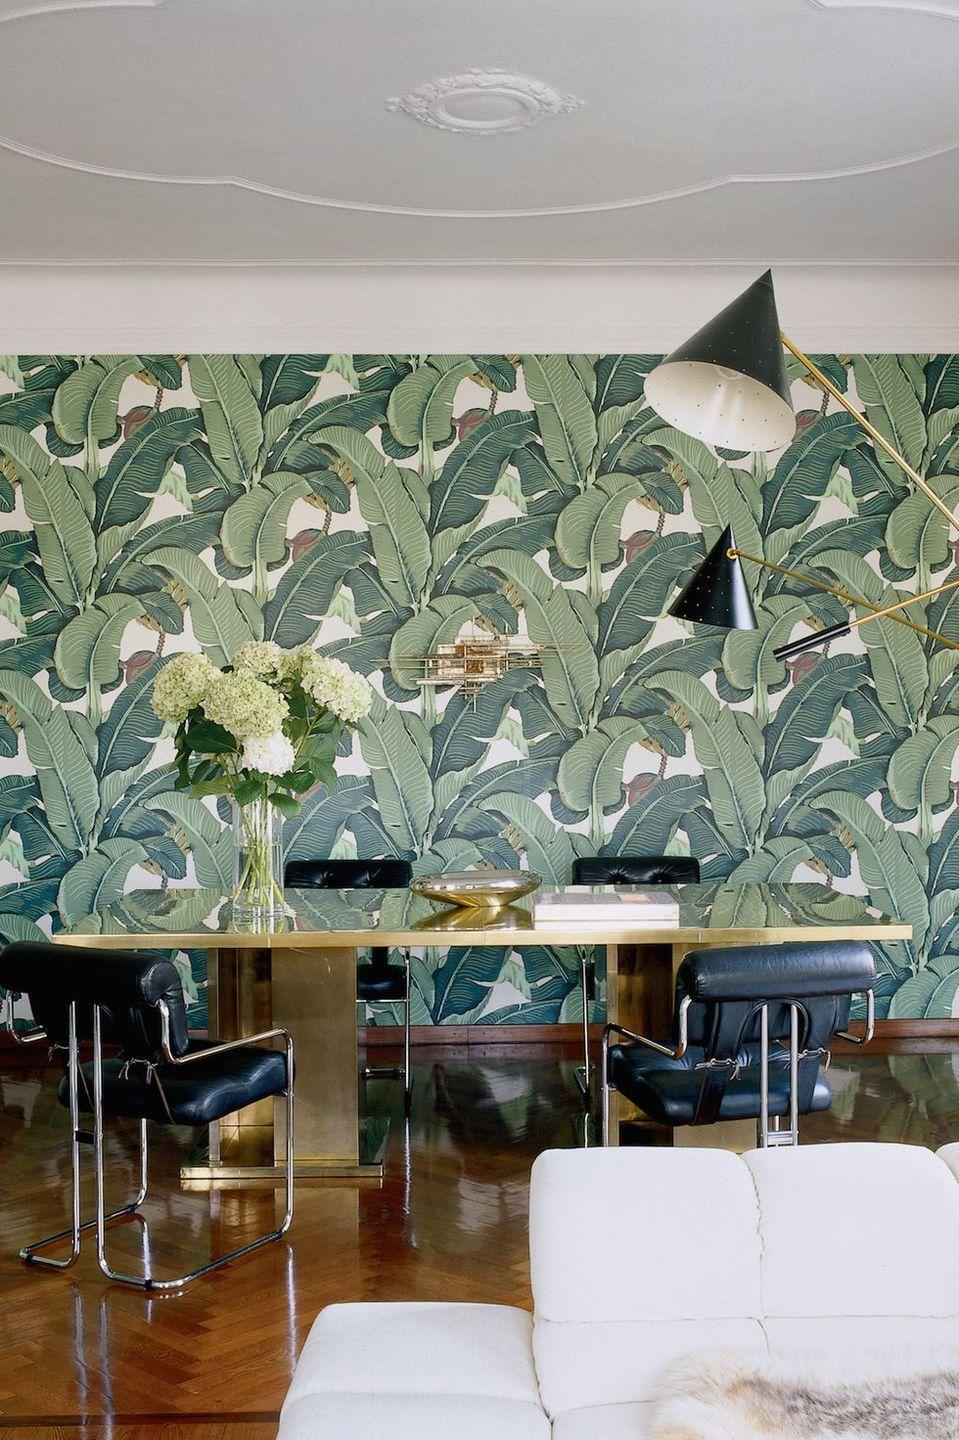 """<p>A palm-print wallcovering adds a dose of Southern California cool to the former Milan home of Brian Atwood and Nate Berkus. The brass dining table is from the 1970s.</p><p><em>Tropical Leaf Print Wallpaper, $60</em><br><a class=""""link rapid-noclick-resp"""" href=""""https://go.redirectingat.com?id=74968X1596630&url=https%3A%2F%2Fwww.westelm.com%2Fproducts%2Fwallshoppe-tropical-leaf-print-wallpaper-w2942%2F%3FcatalogId%3D71%26sku%3D4239221%26cm_ven%3DPLA%26cm_cat%3DGoogle%26cm_pla%3DWall%2BArt%2B%252B%2BMirrors%2B%253E%2BWallpaper%2B%252B%2BPaneling%26cm_ite%3D4239221%26gclid%3DCjwKCAjw8NfrBRA7EiwAfiVJpWRc3JXt1uf8sMGpGIXYhxoND8BVOOP4ZcygHkpqKQ3siJFX05j9jxoCSxQQAvD_BwE&sref=https%3A%2F%2Fwww.redbookmag.com%2Fhome%2Fg35083191%2Fwallpaper-design-ideas%2F"""" rel=""""nofollow noopener"""" target=""""_blank"""" data-ylk=""""slk:Shop the Look"""">Shop the Look</a></p>"""